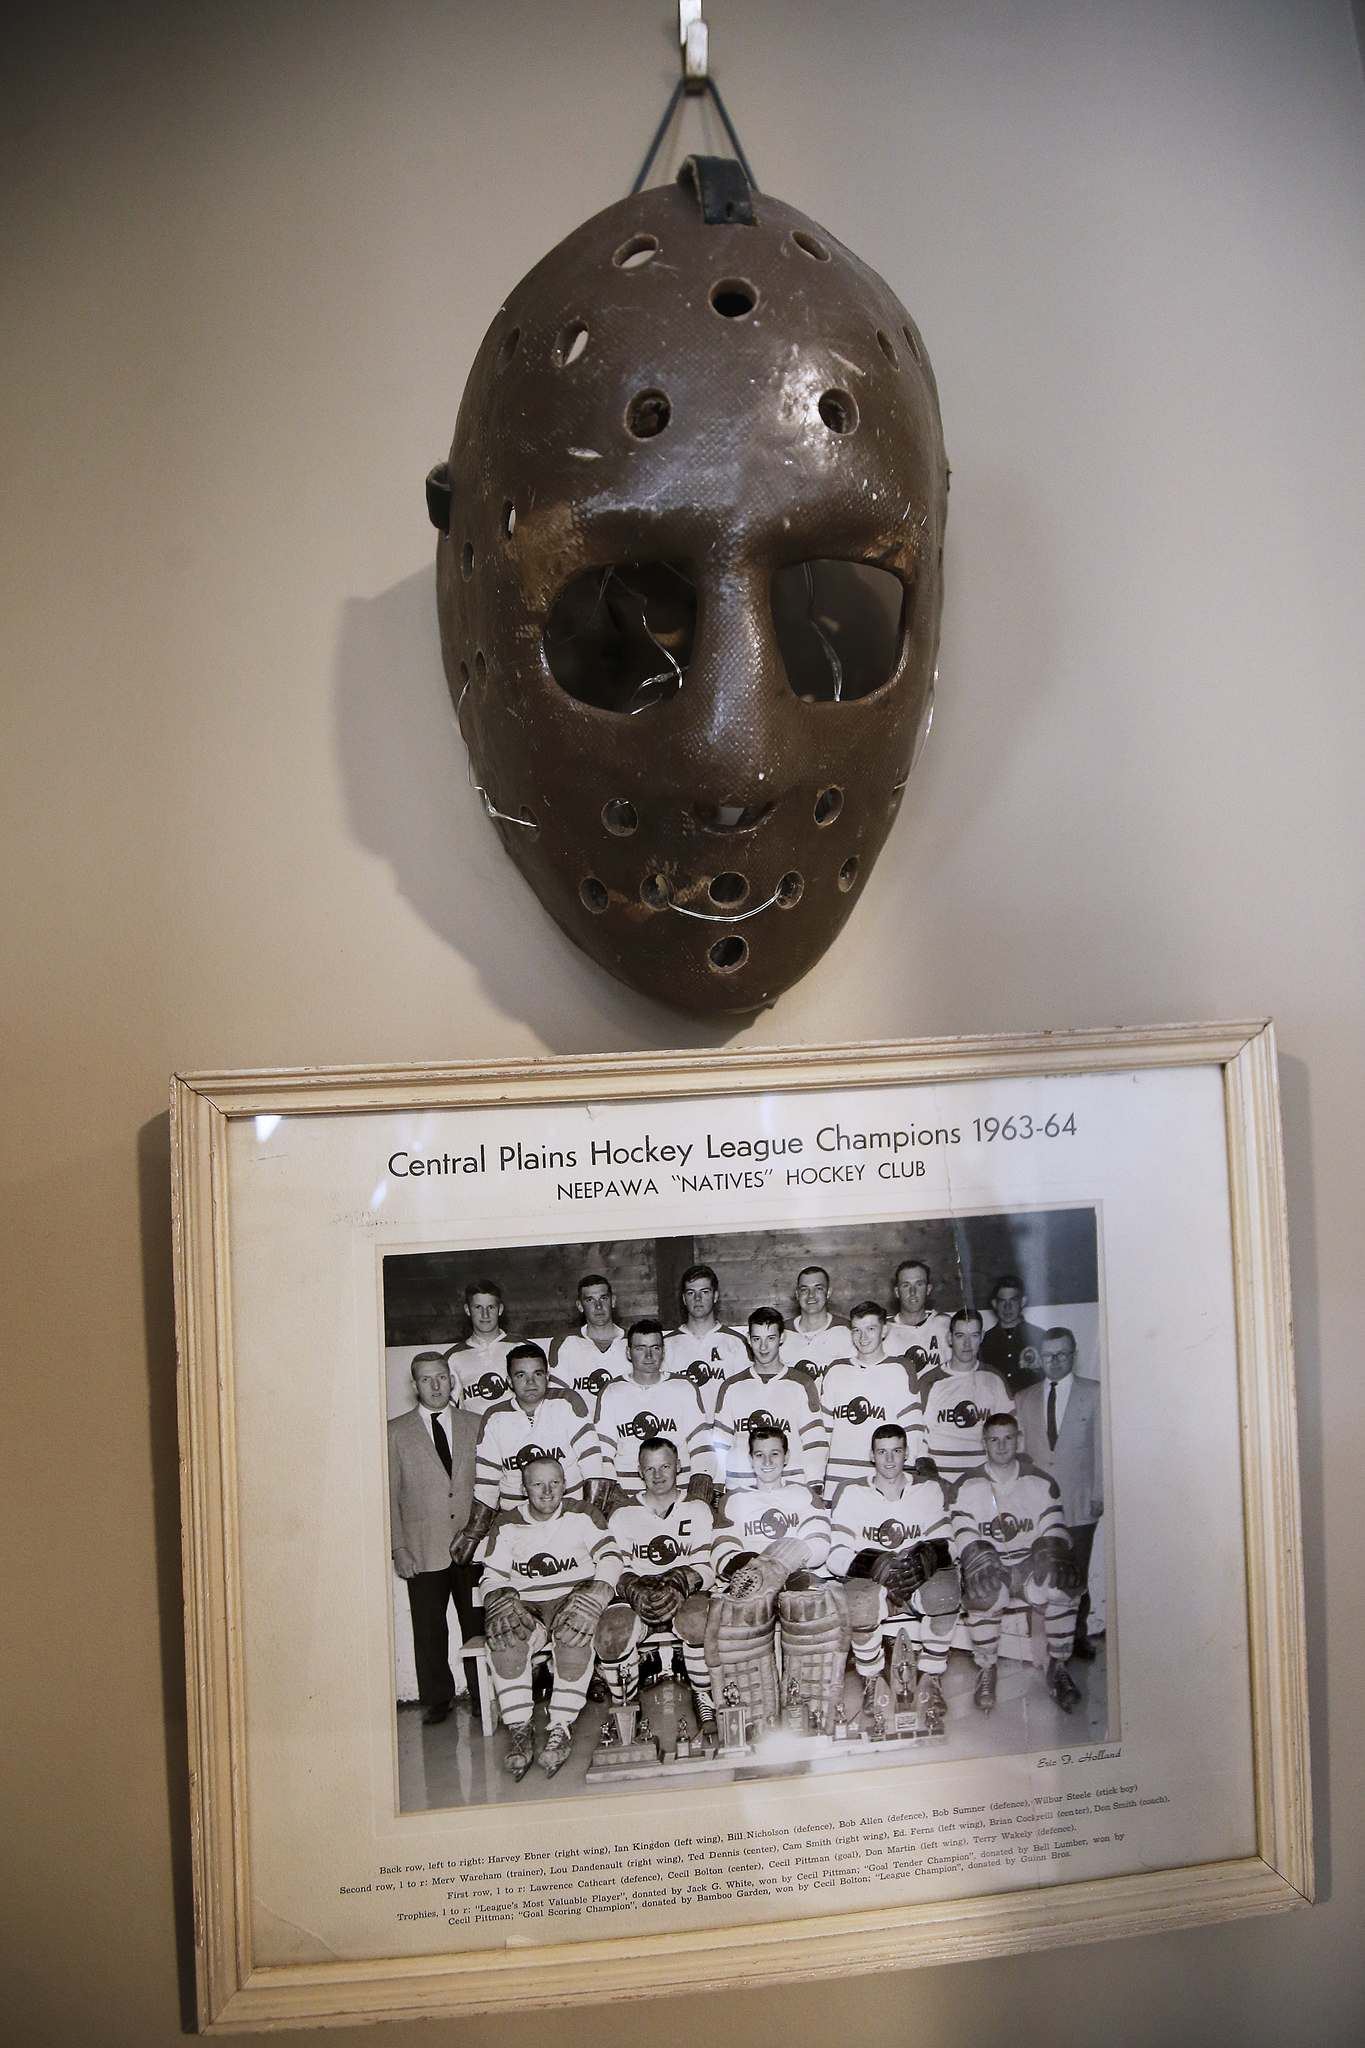 JOHN WOODS / WINNIPEG FREE PRESS</p><p>Neepawa Natives memorabilia in the home of Myles Cathcart. Cathcart's father and uncle were players in this 1963-64 photo and a part of the organizers who started the Natives. This was the last team to wear the Safeway logo before it switched to the warrior emblem.</p>